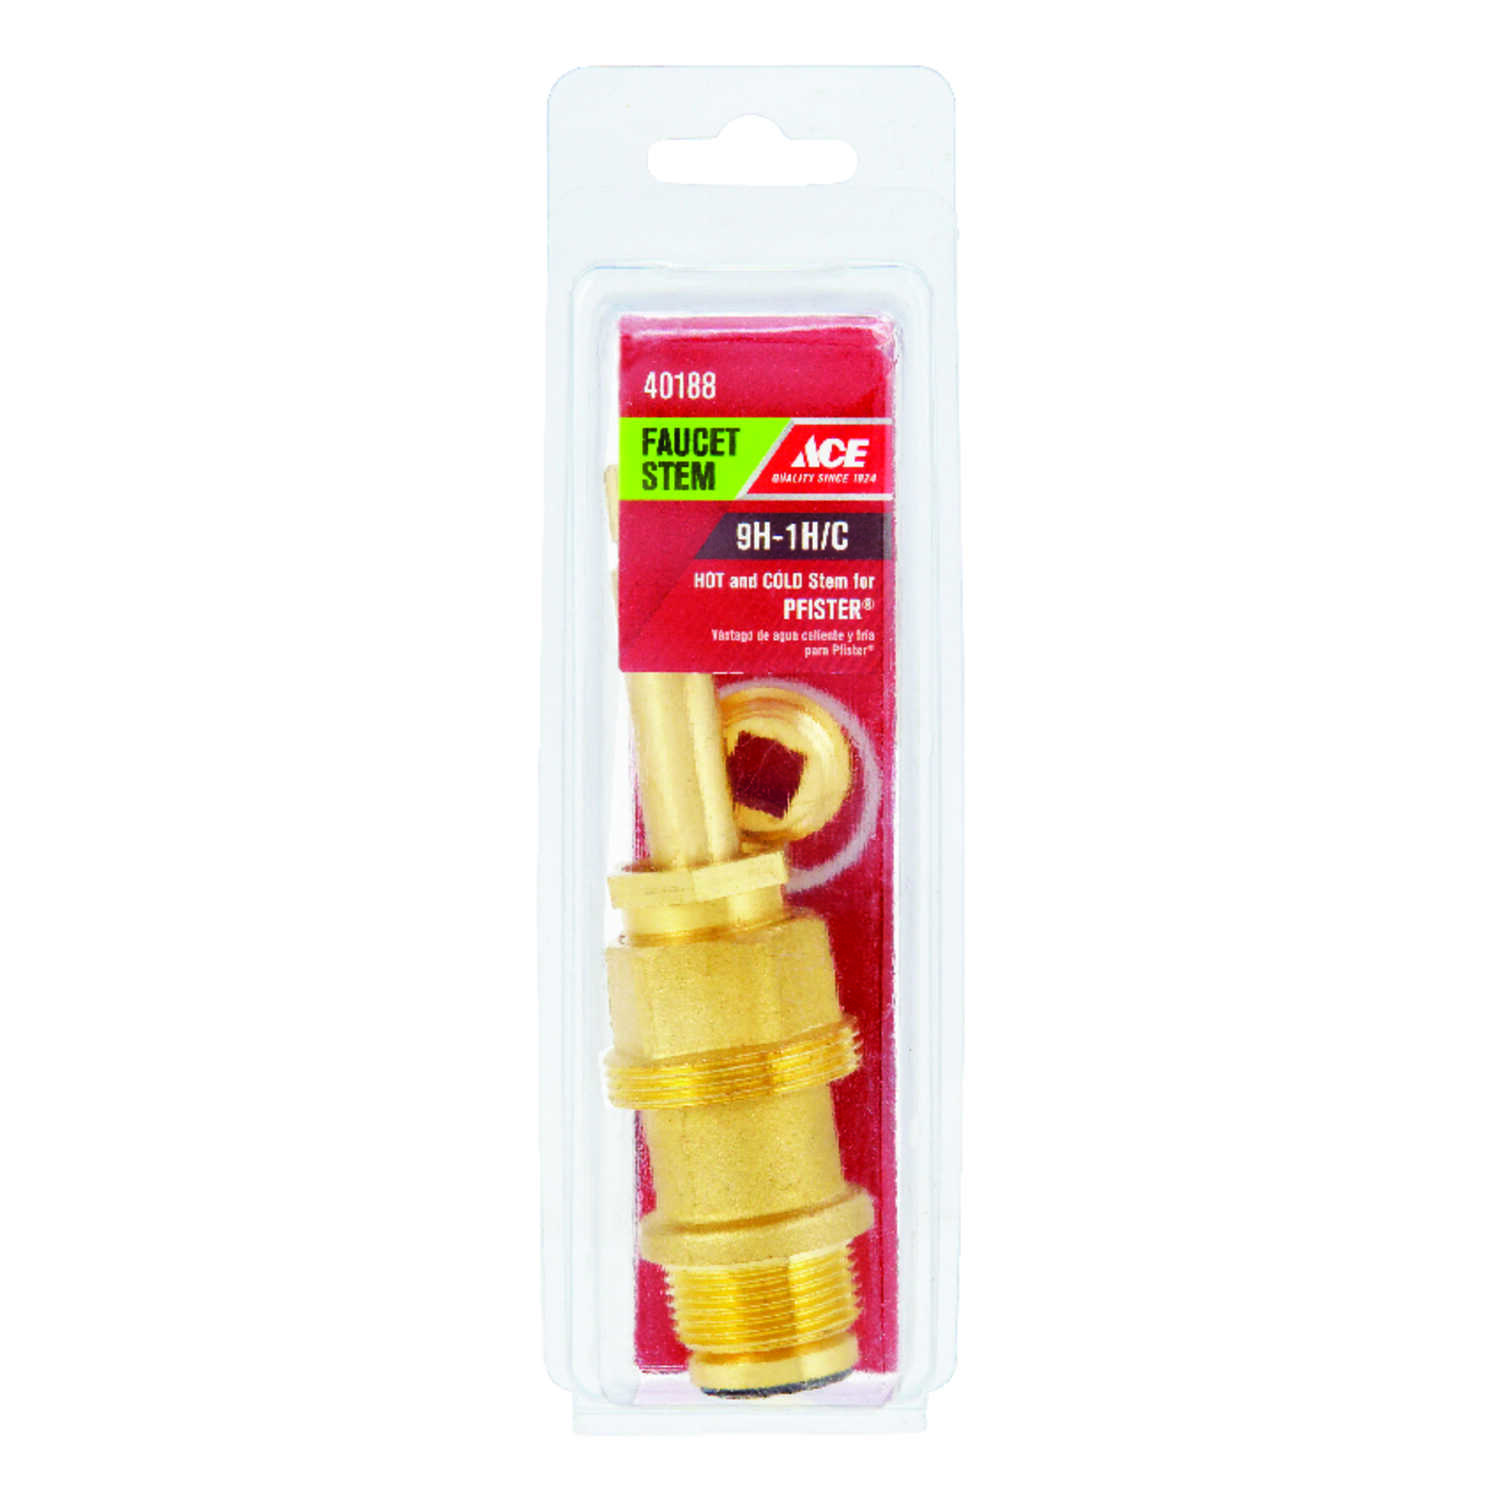 Ace  Hot and Cold  9H-1H/C  Faucet Stem  For Pfister